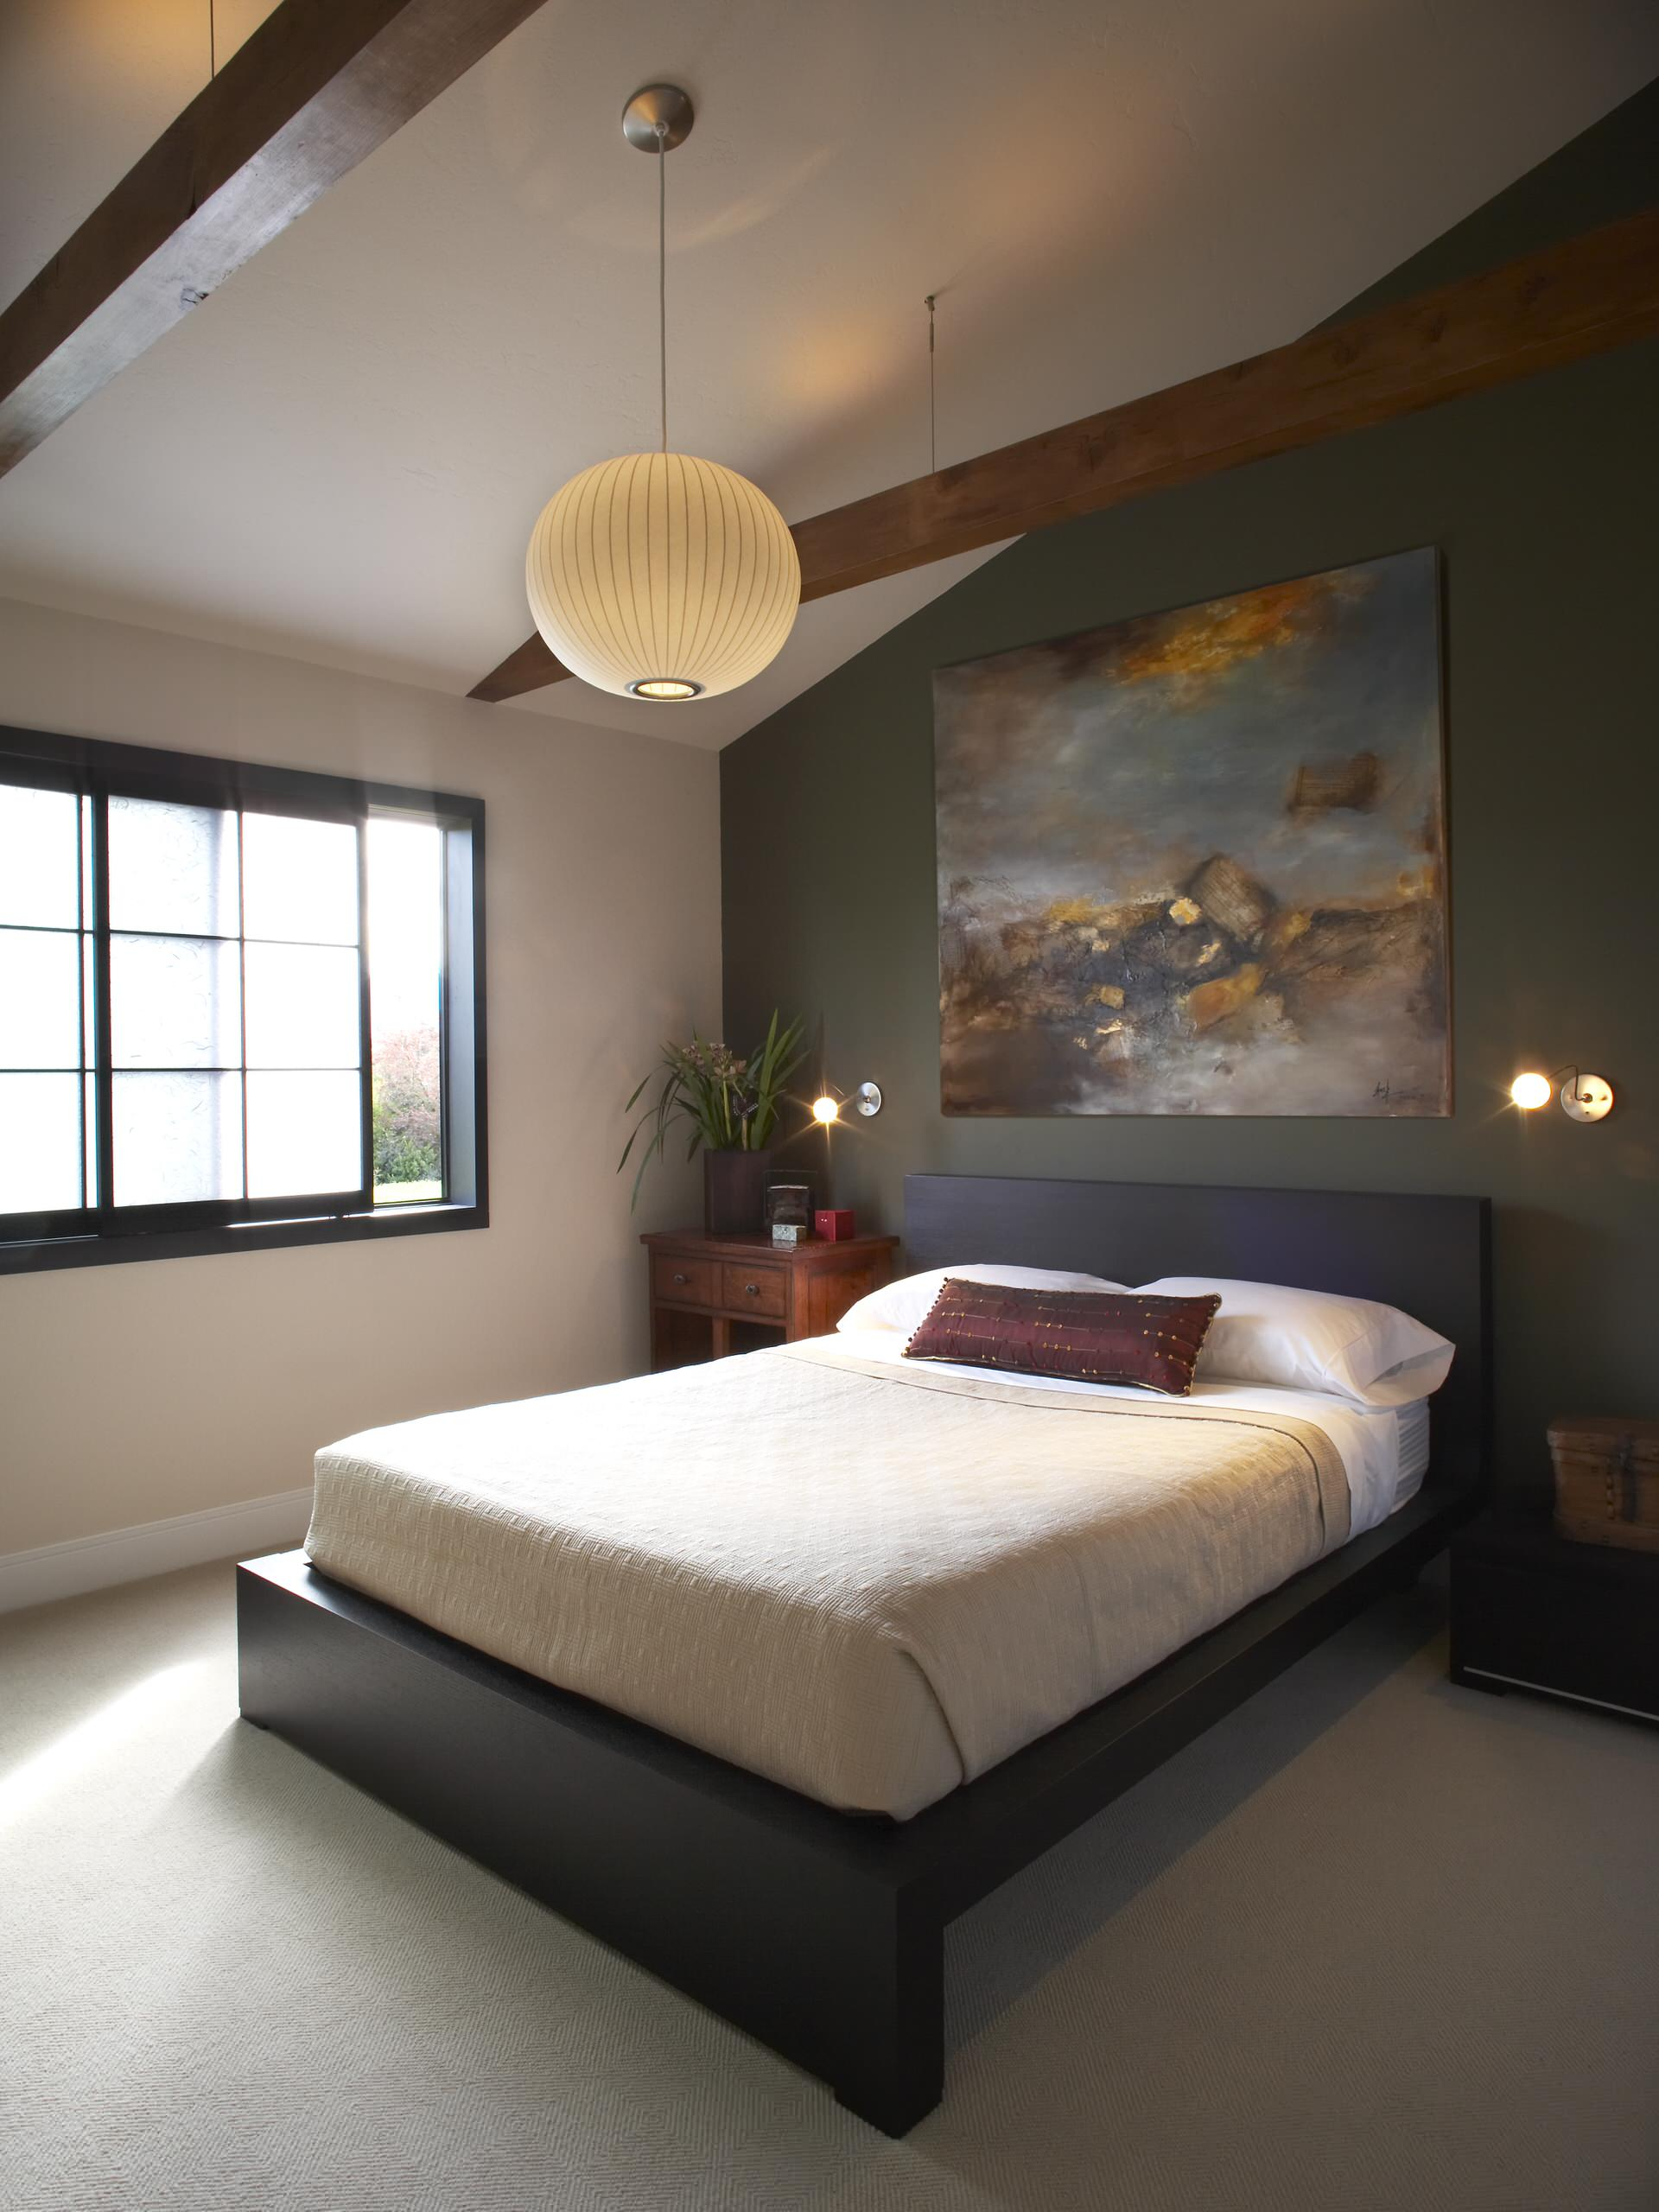 75 Beautiful Asian Bedroom Pictures Ideas February 2021 Houzz